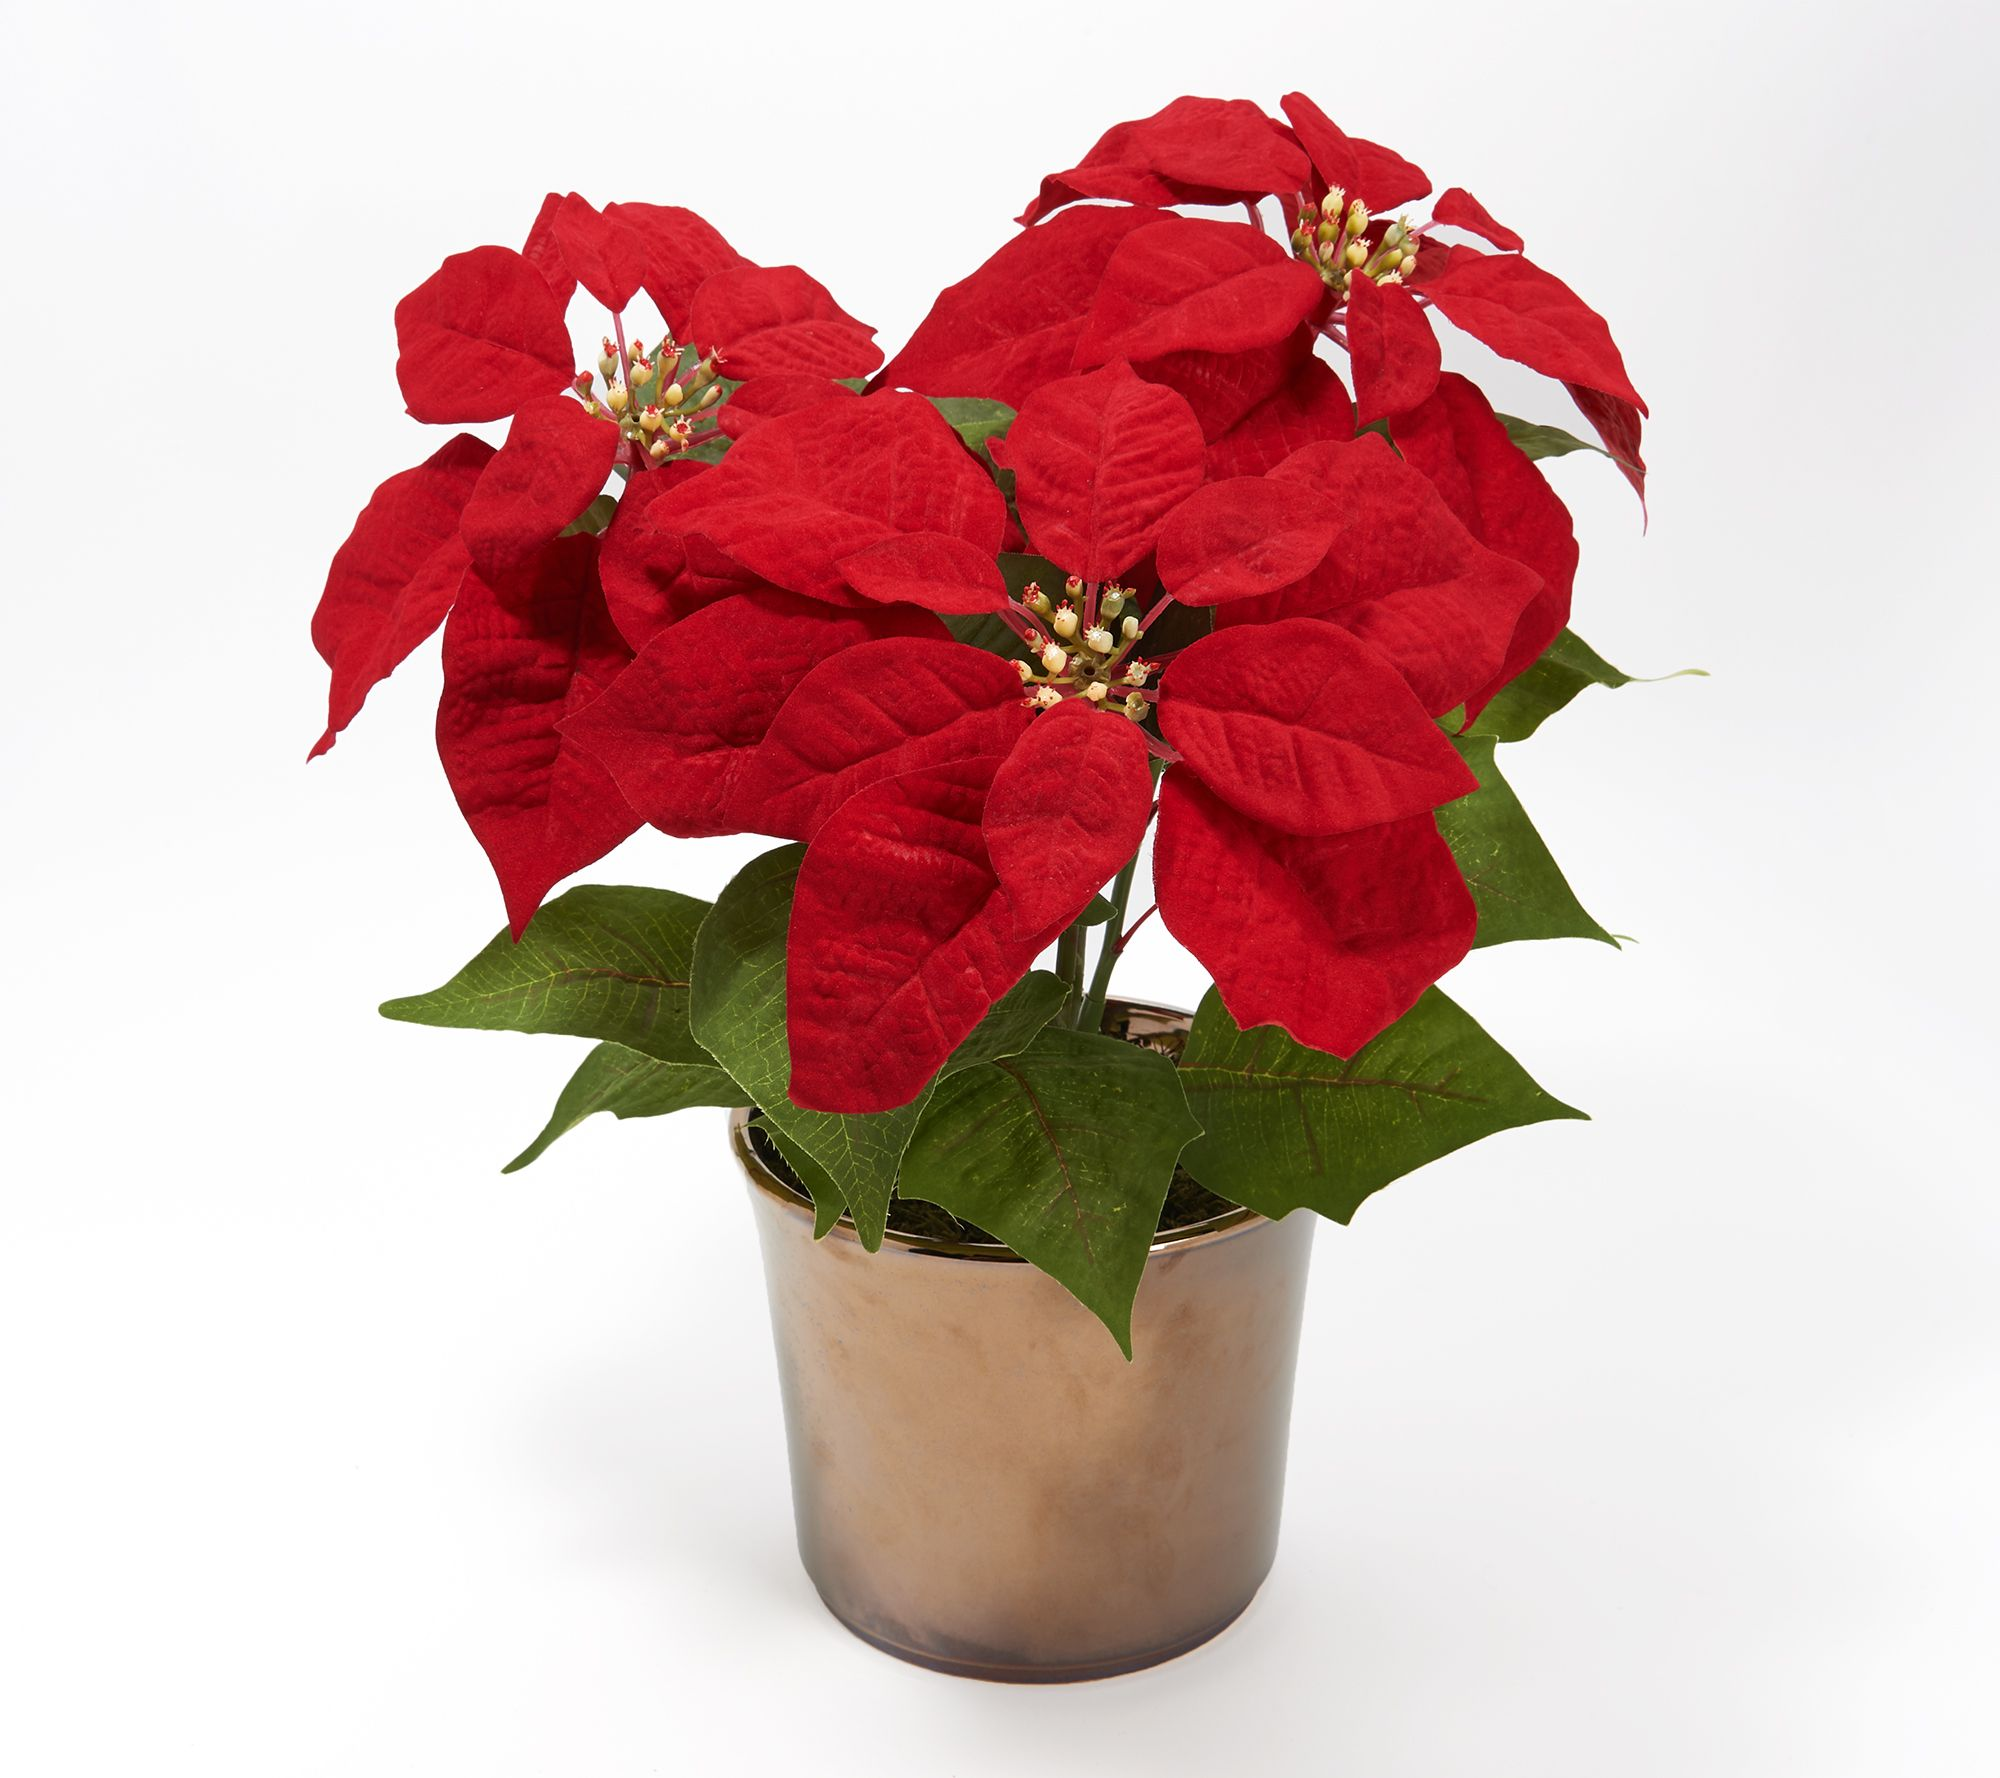 Faux Poinsettia Plant In Metallic Gold Pot By Peony Qvc Com